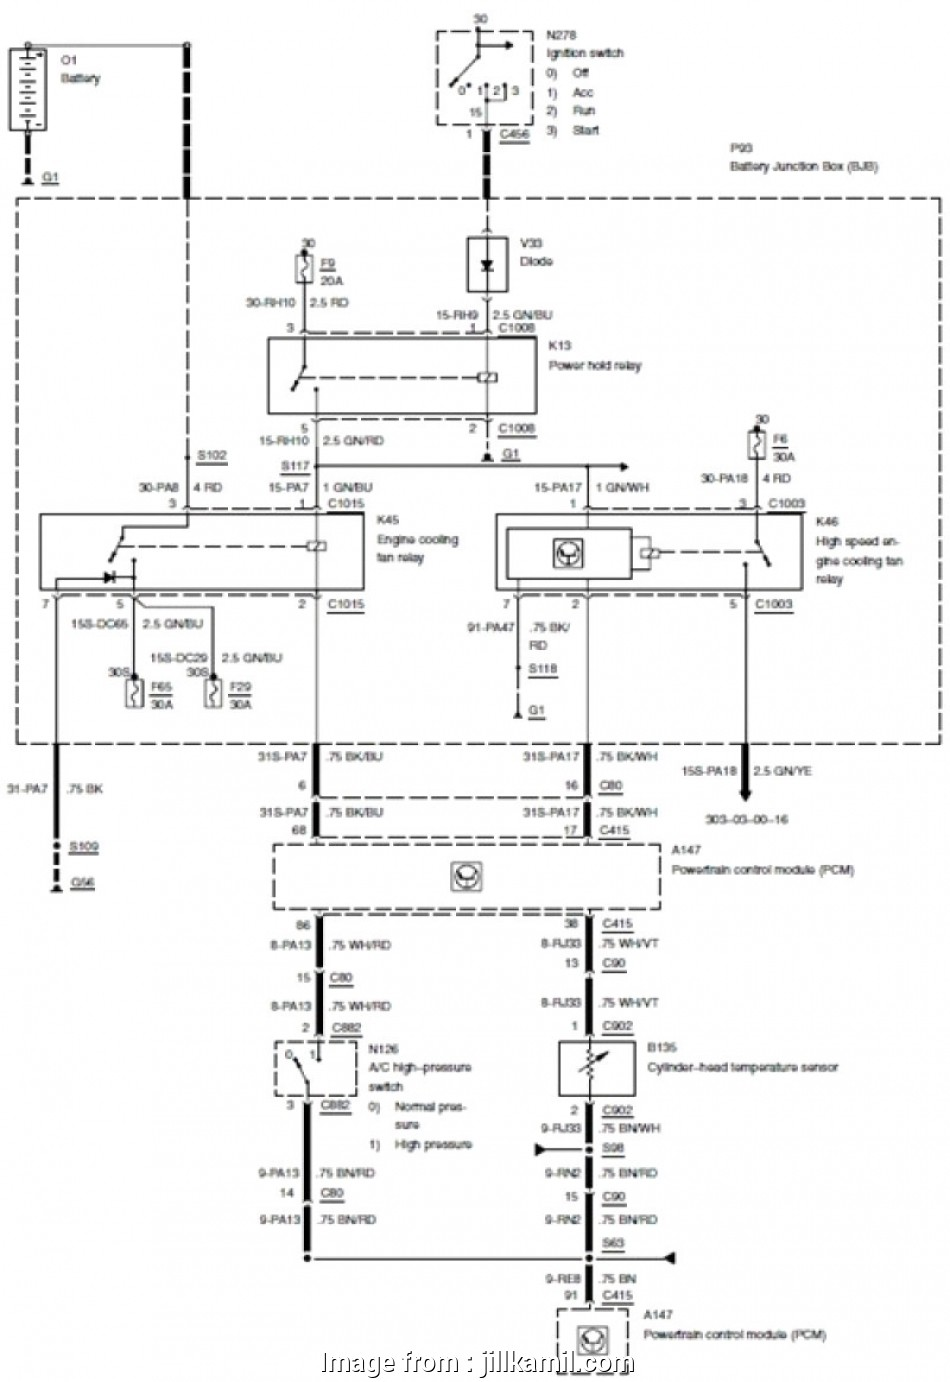 hight resolution of ford ka electrical wiring diagram original 10 2002 ford focus cooling wiring diagram viewki me